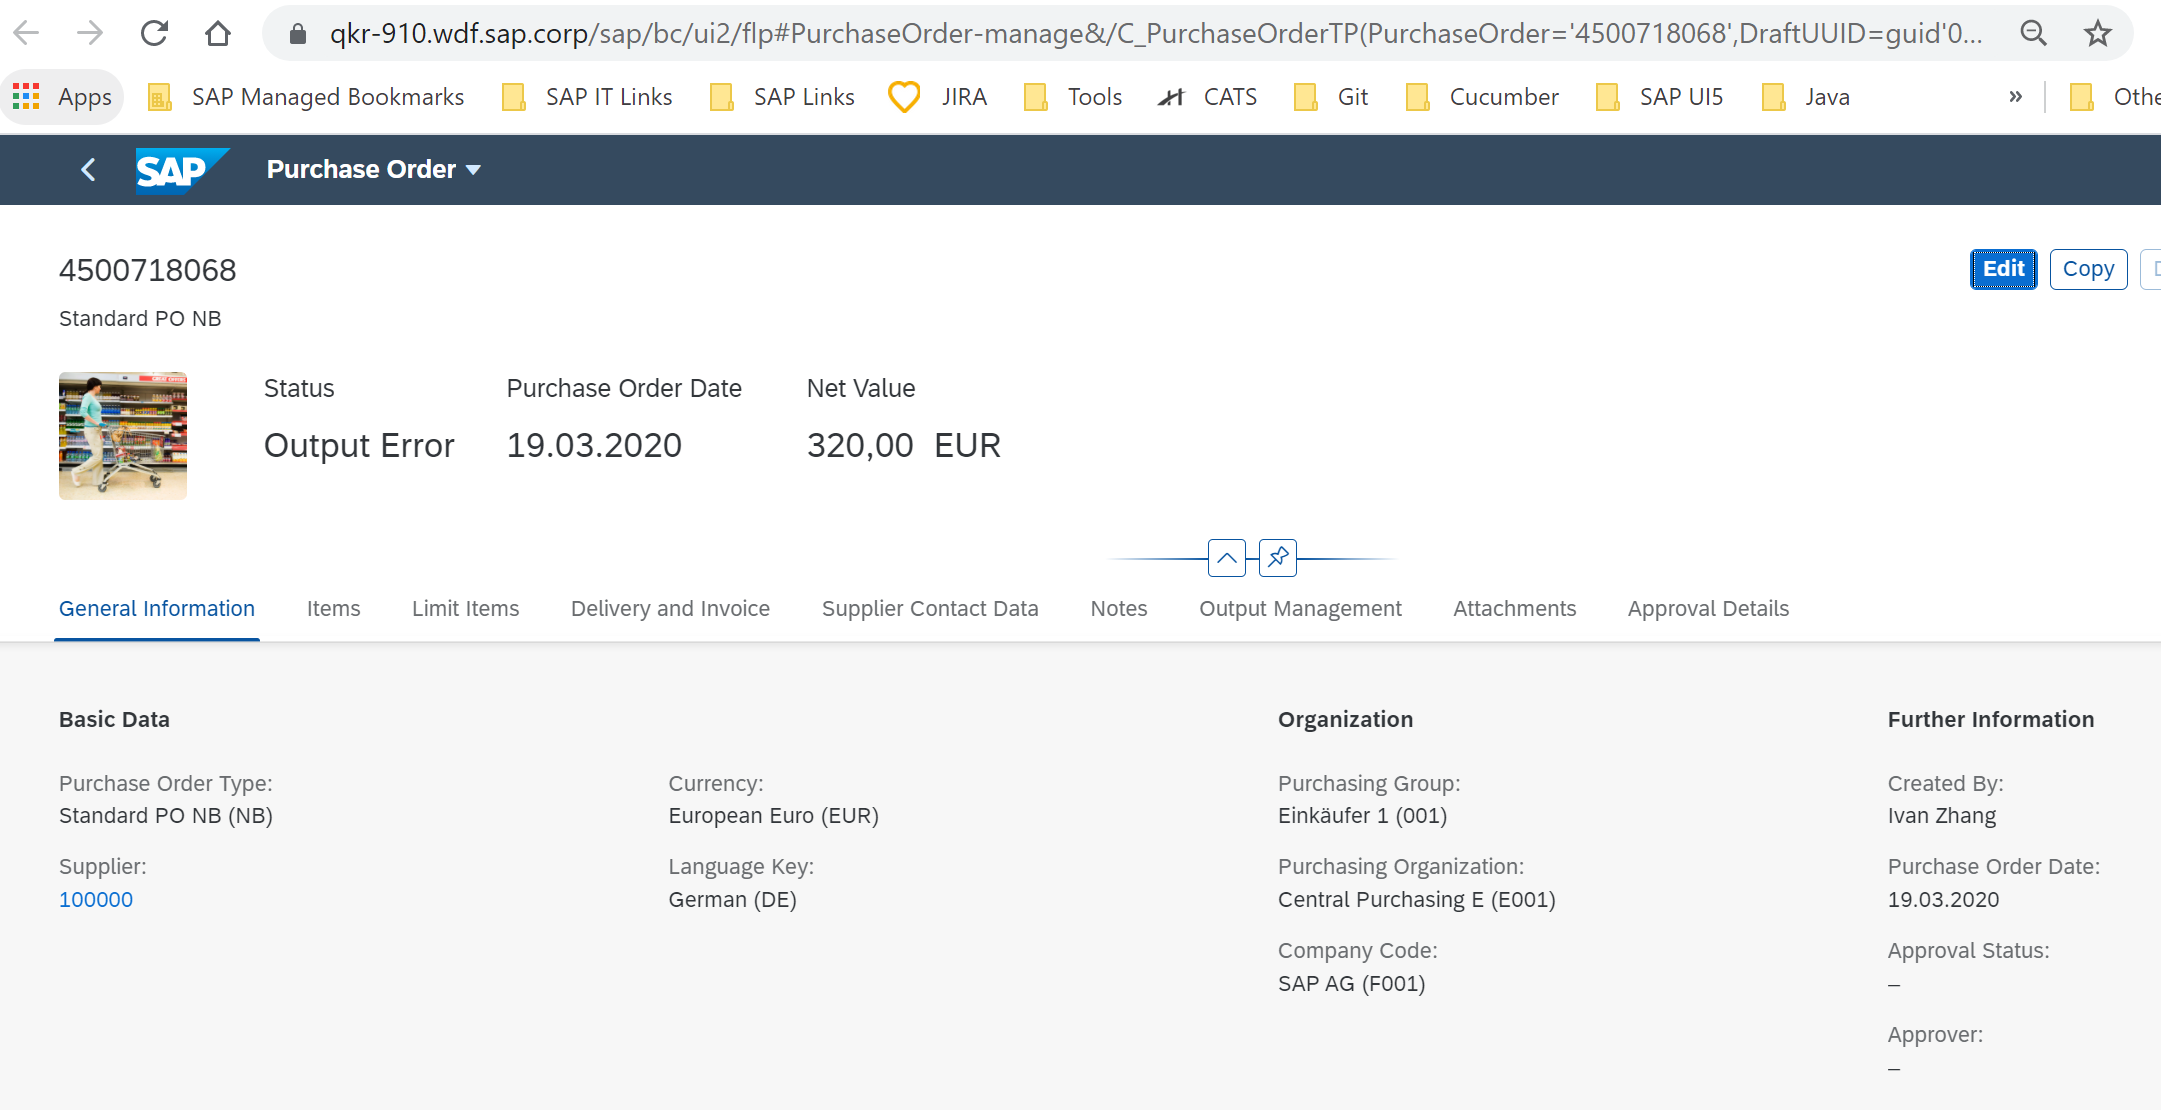 Purchase%20Order%20details%20as%20seen%20in%20Manage%20Purchase%20Orders%20app%20at%20the%20connected%20system%20after%20Fiori%20navigation